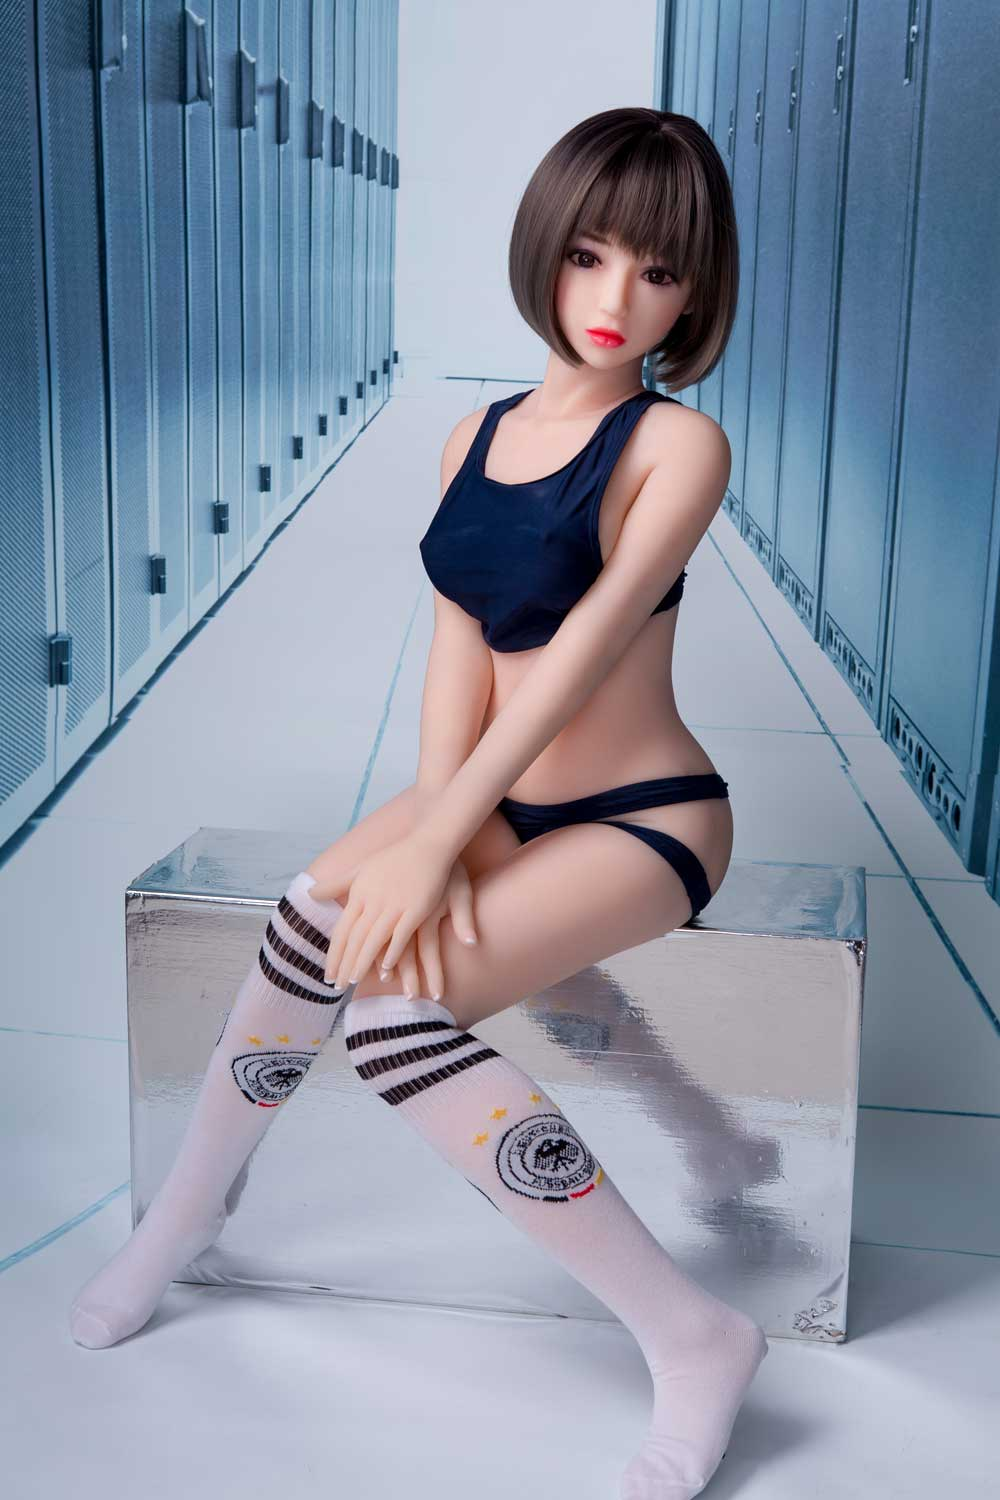 Sex doll with hands on knees